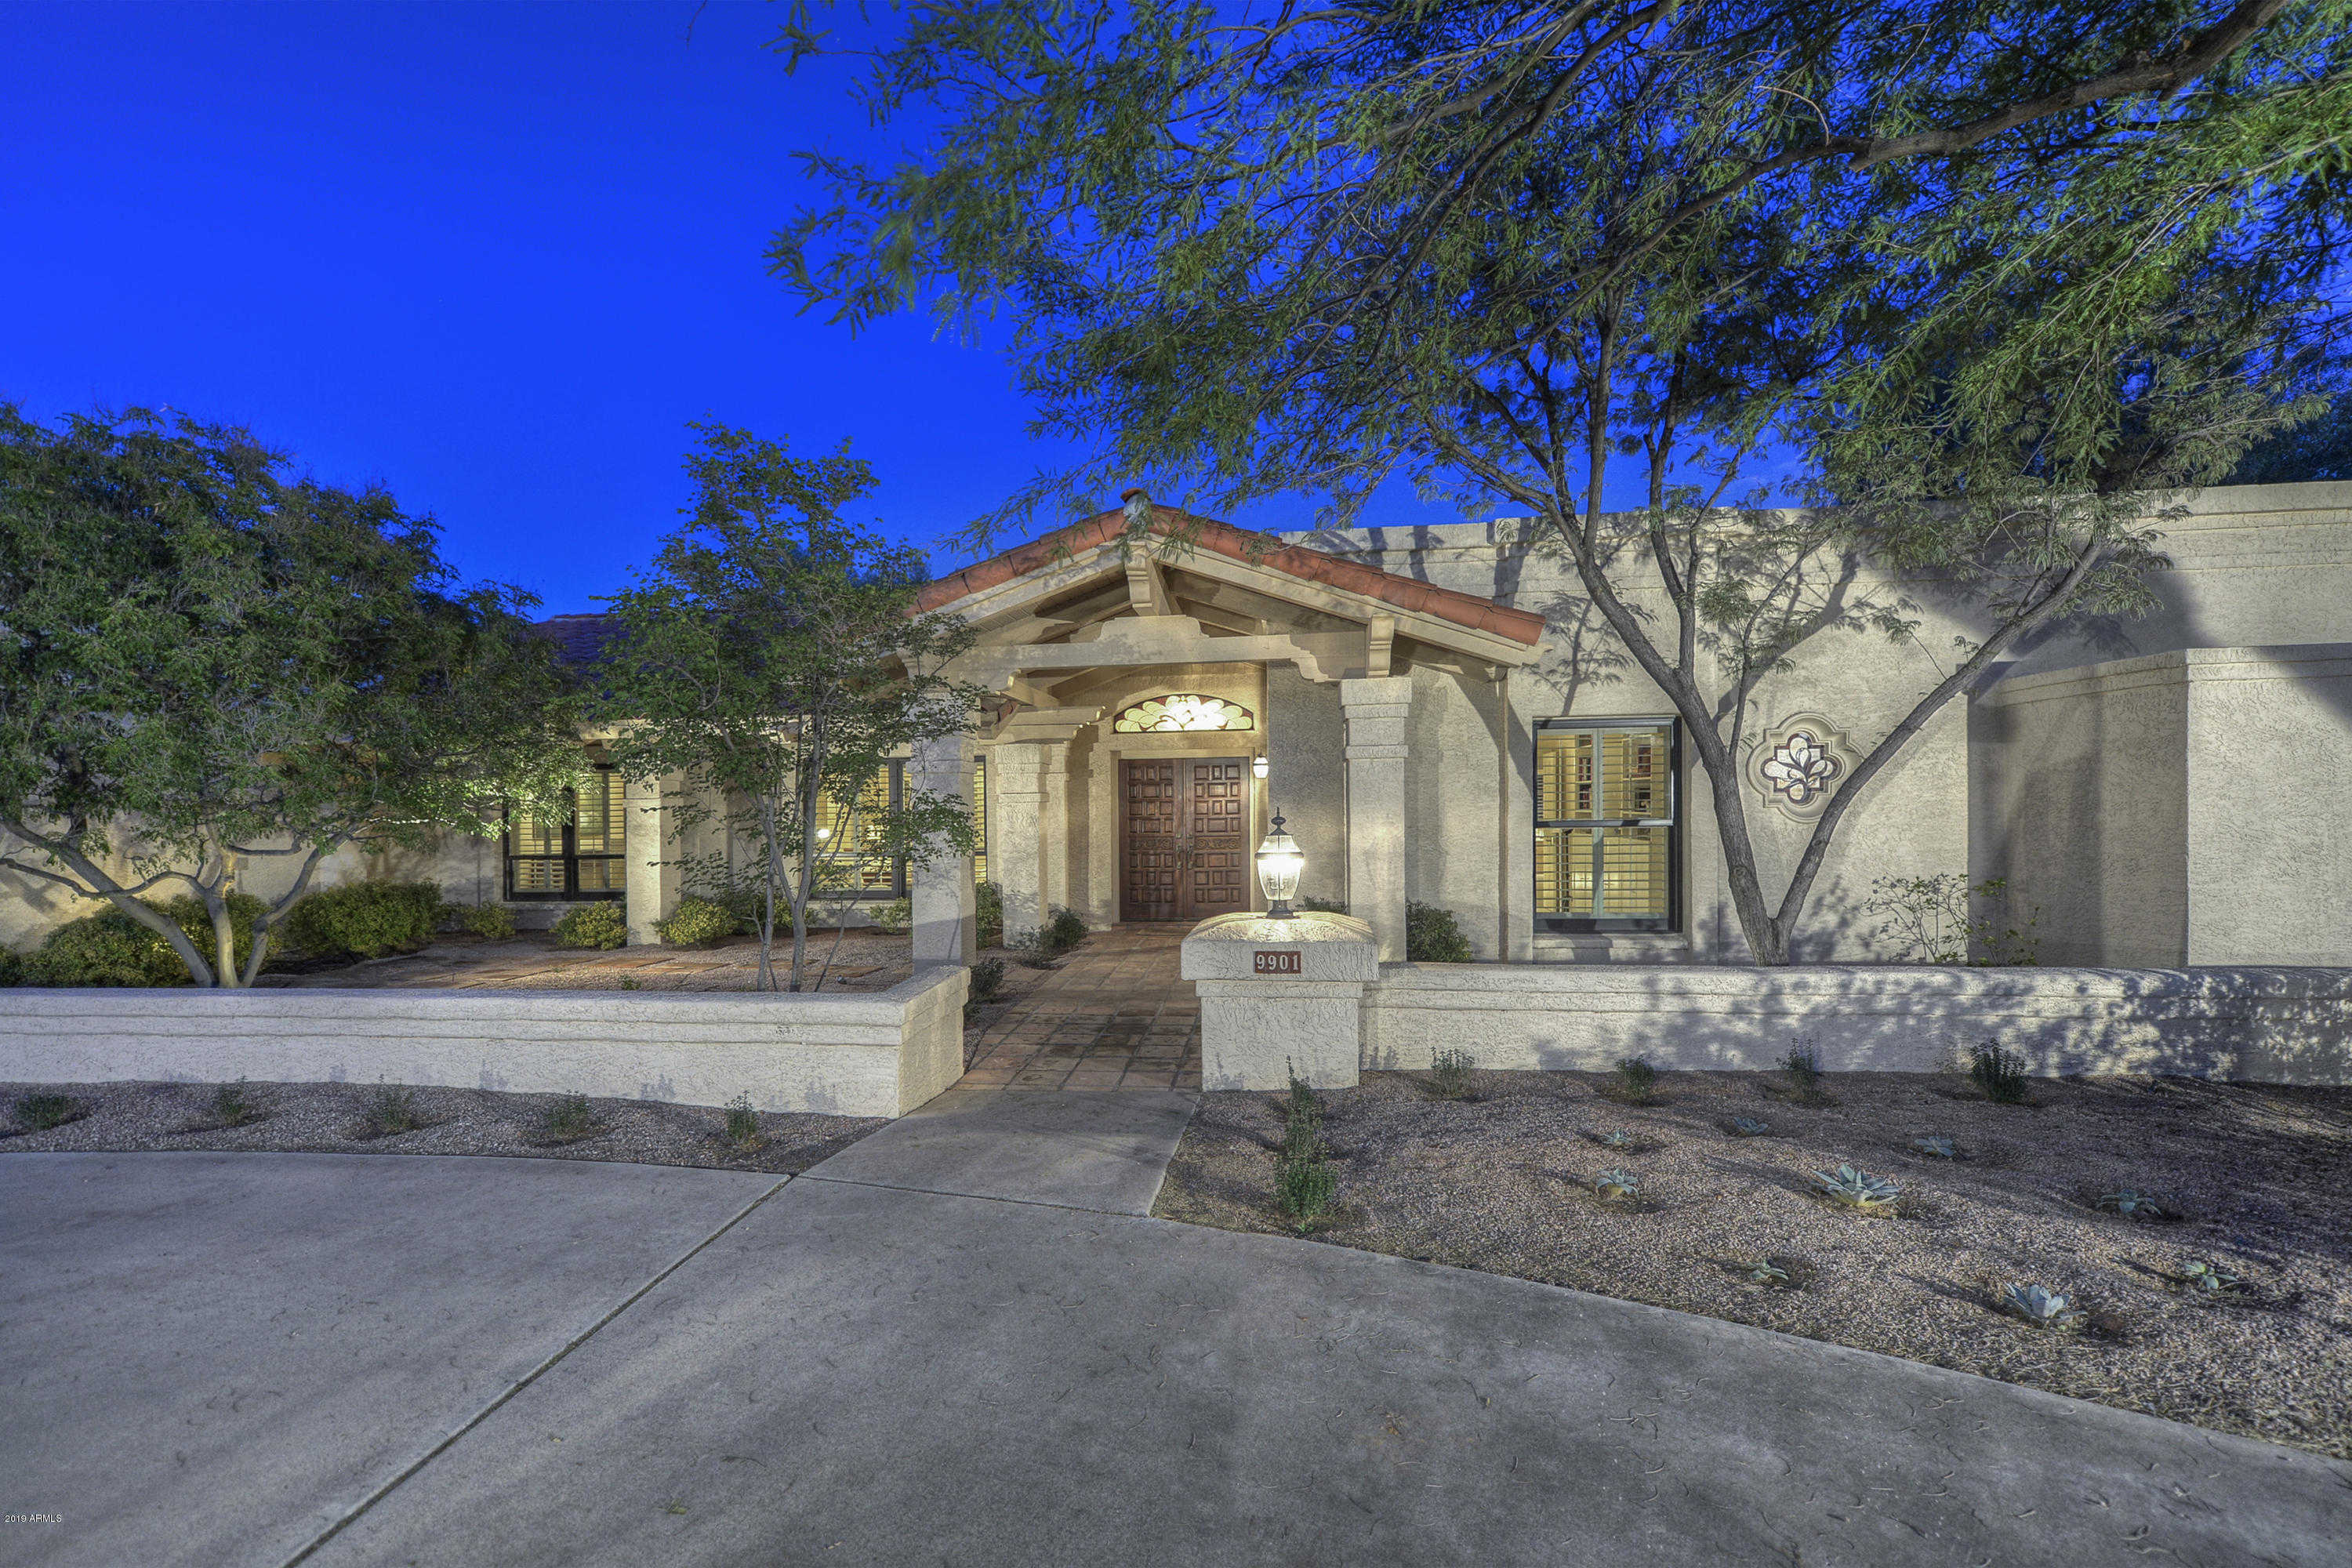 $1,150,000 - 4Br/3Ba - Home for Sale in Quail Hollow Estates Lot 1-16, Paradise Valley